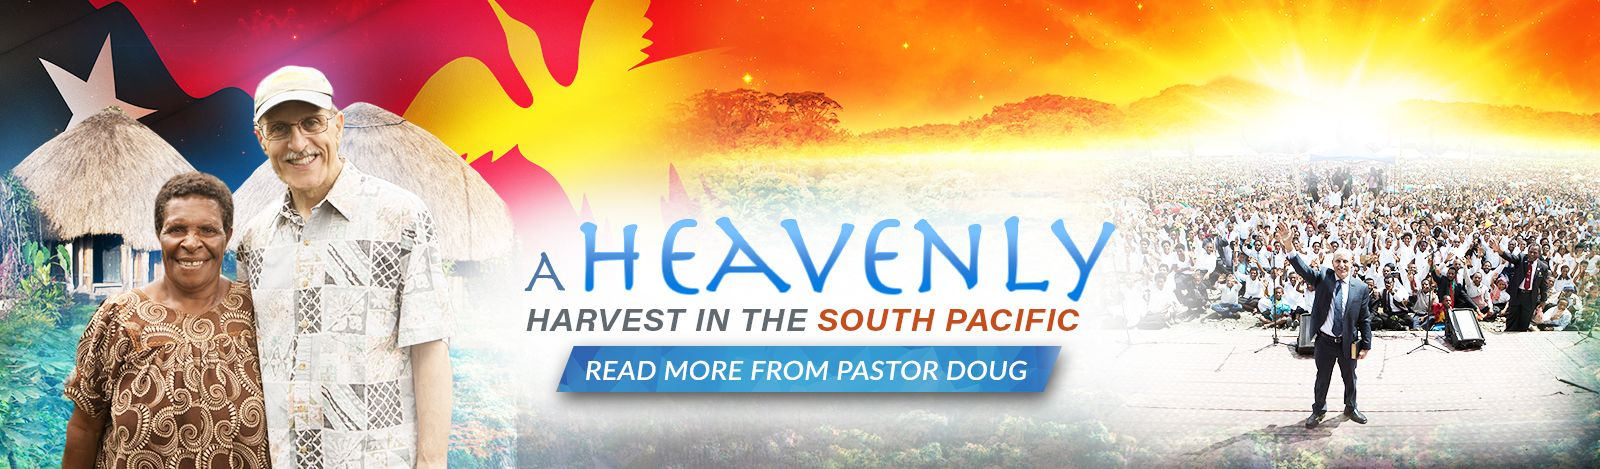 A Heavenly Harvest in the South Pacific